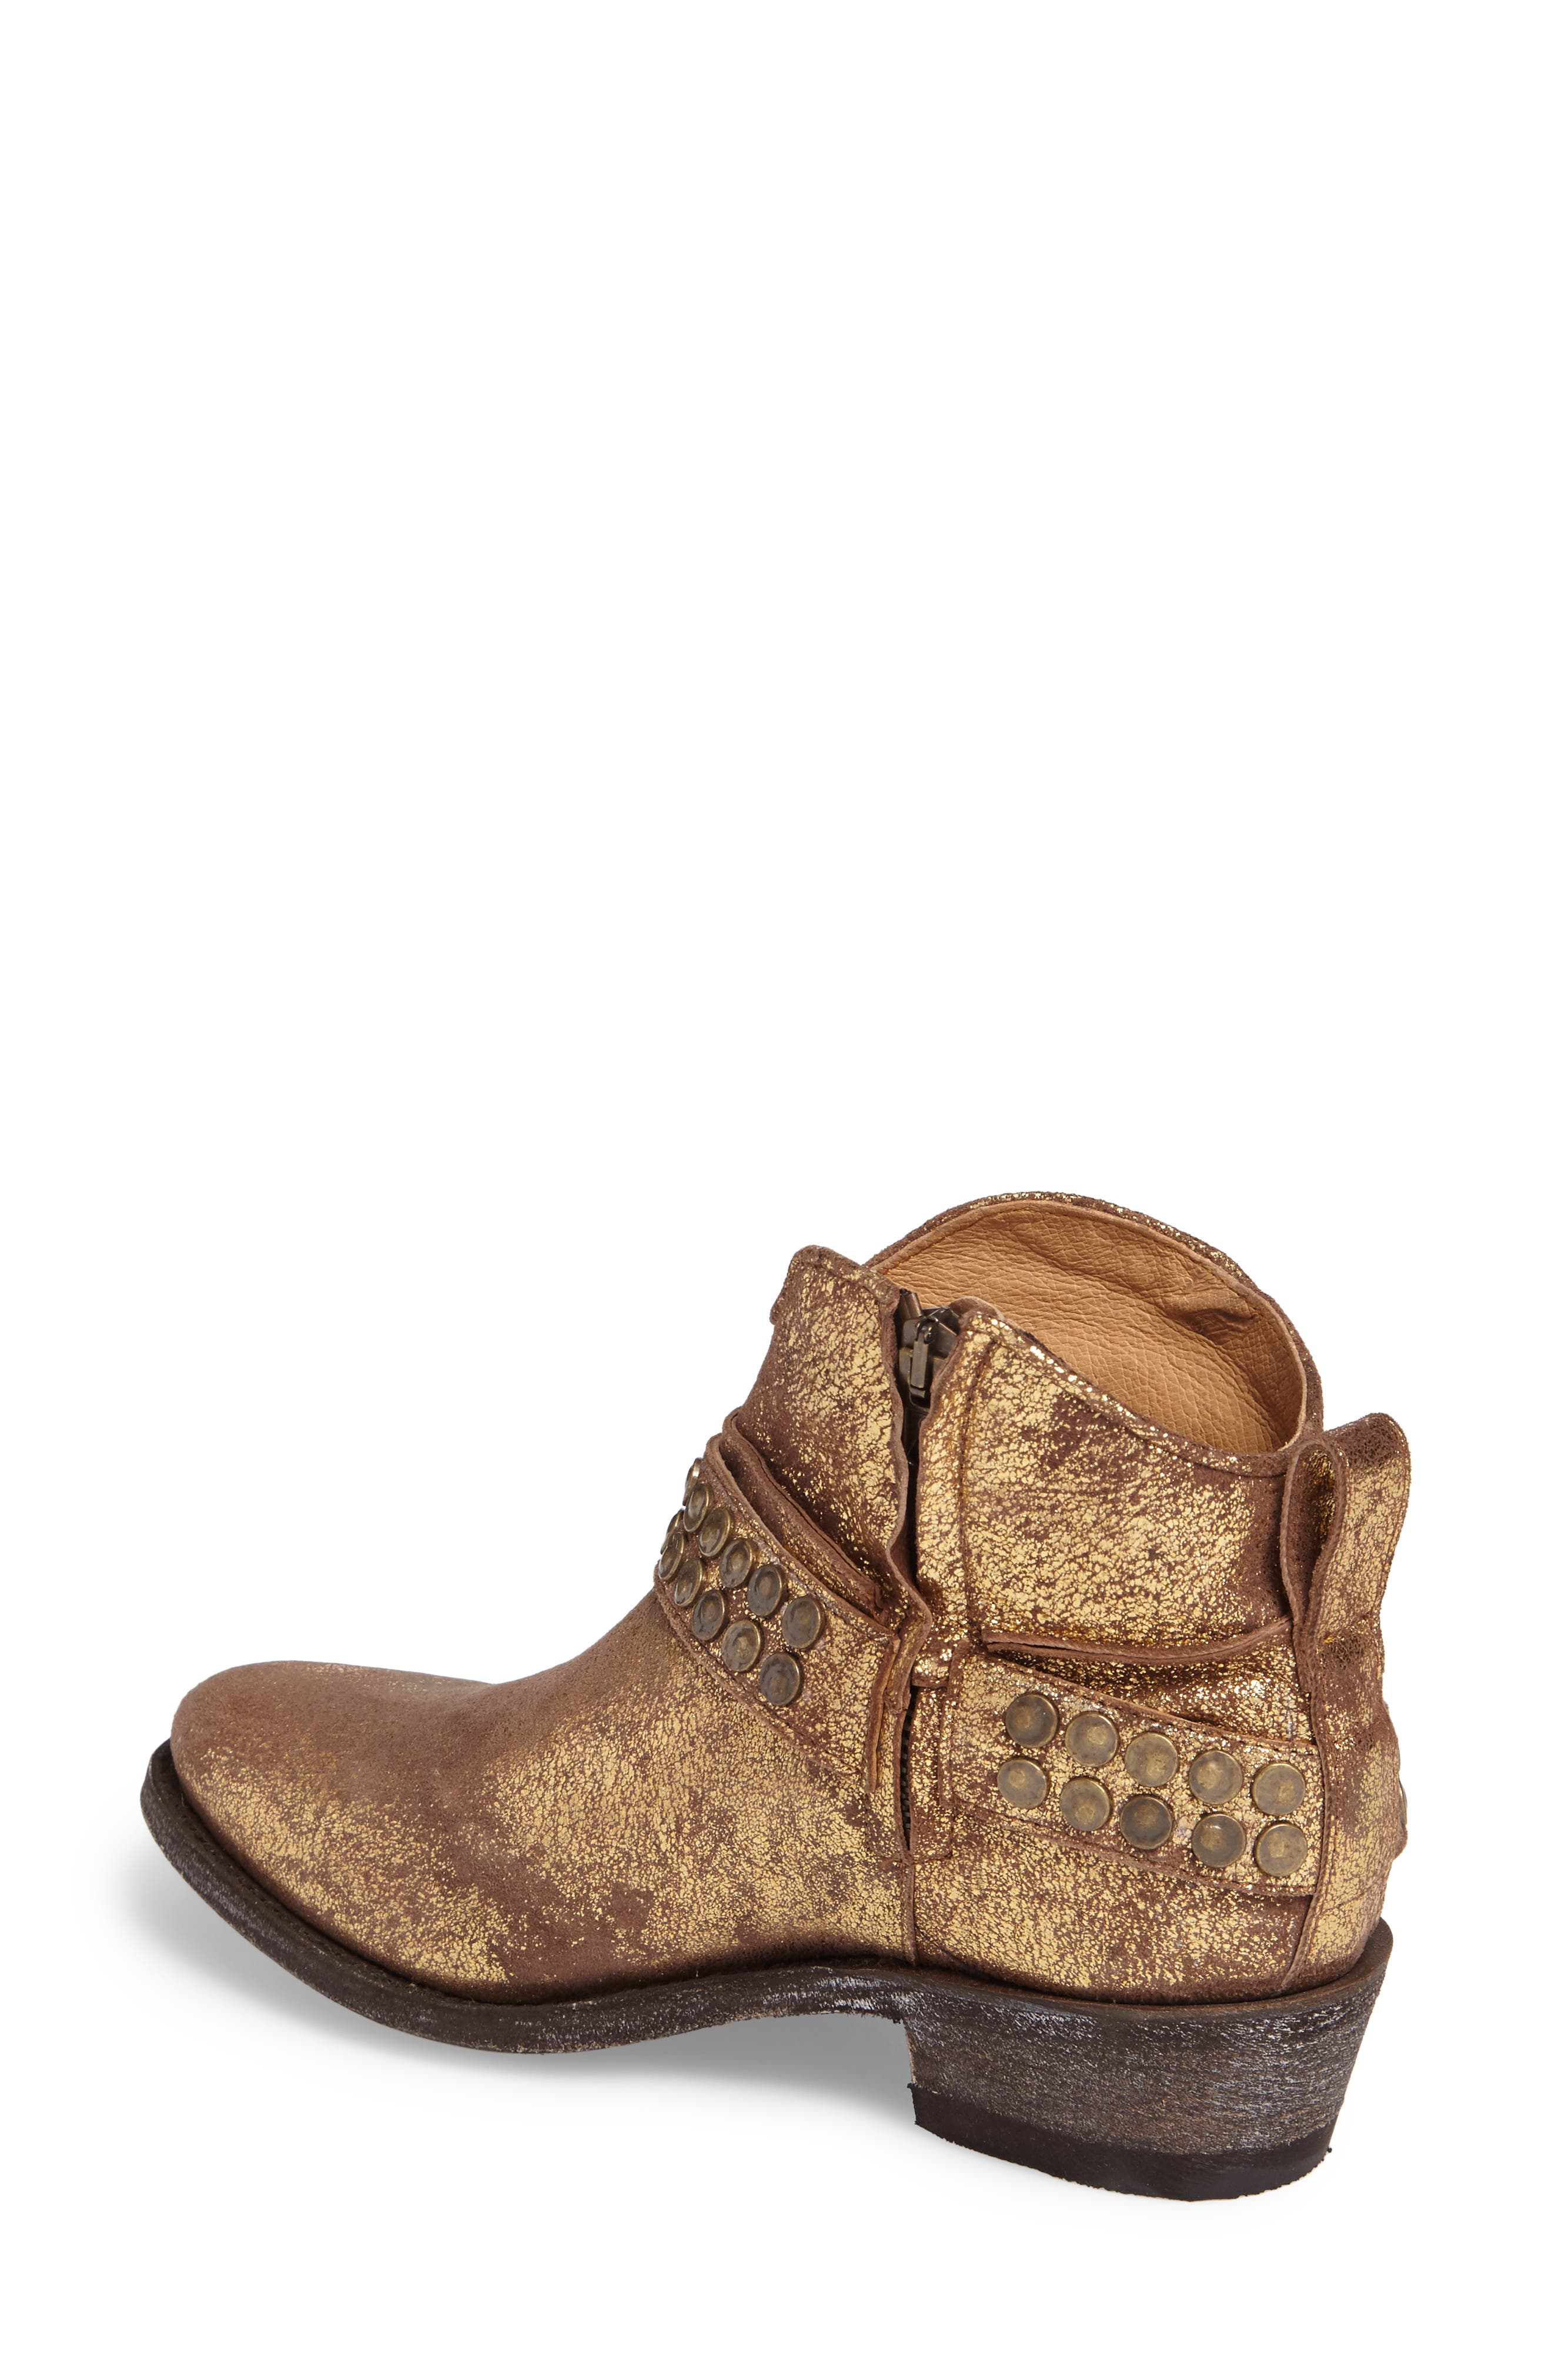 Serene Western Boot,                             Alternate thumbnail 2, color,                             COPPER LEATHER